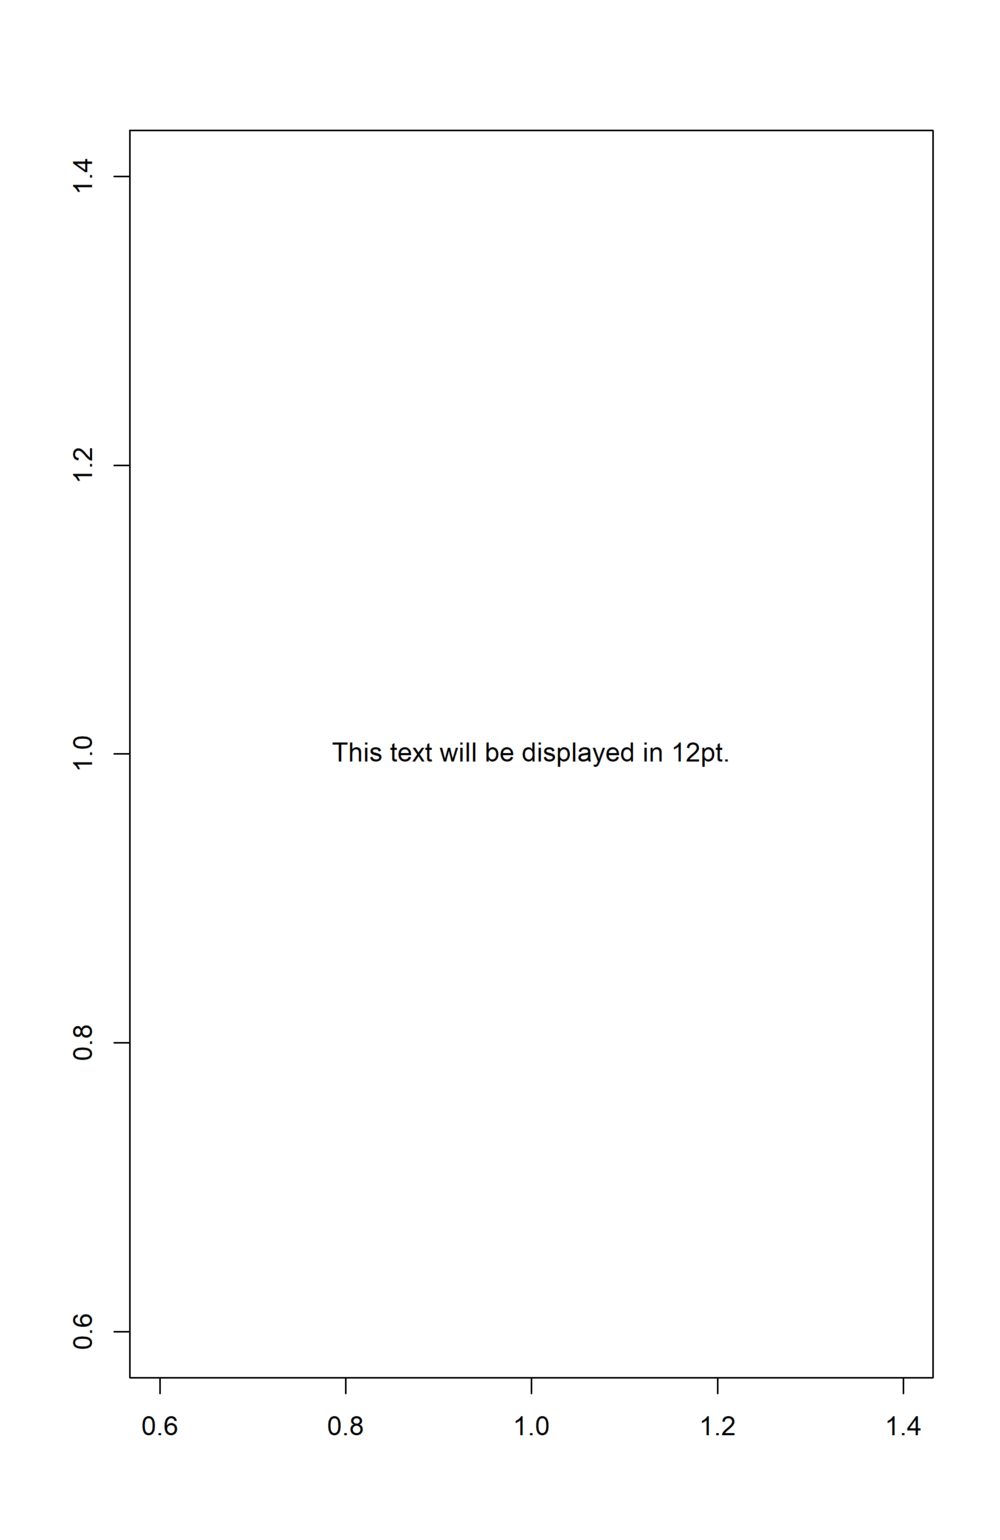 Figure 3: Text in 12pt, total page height.